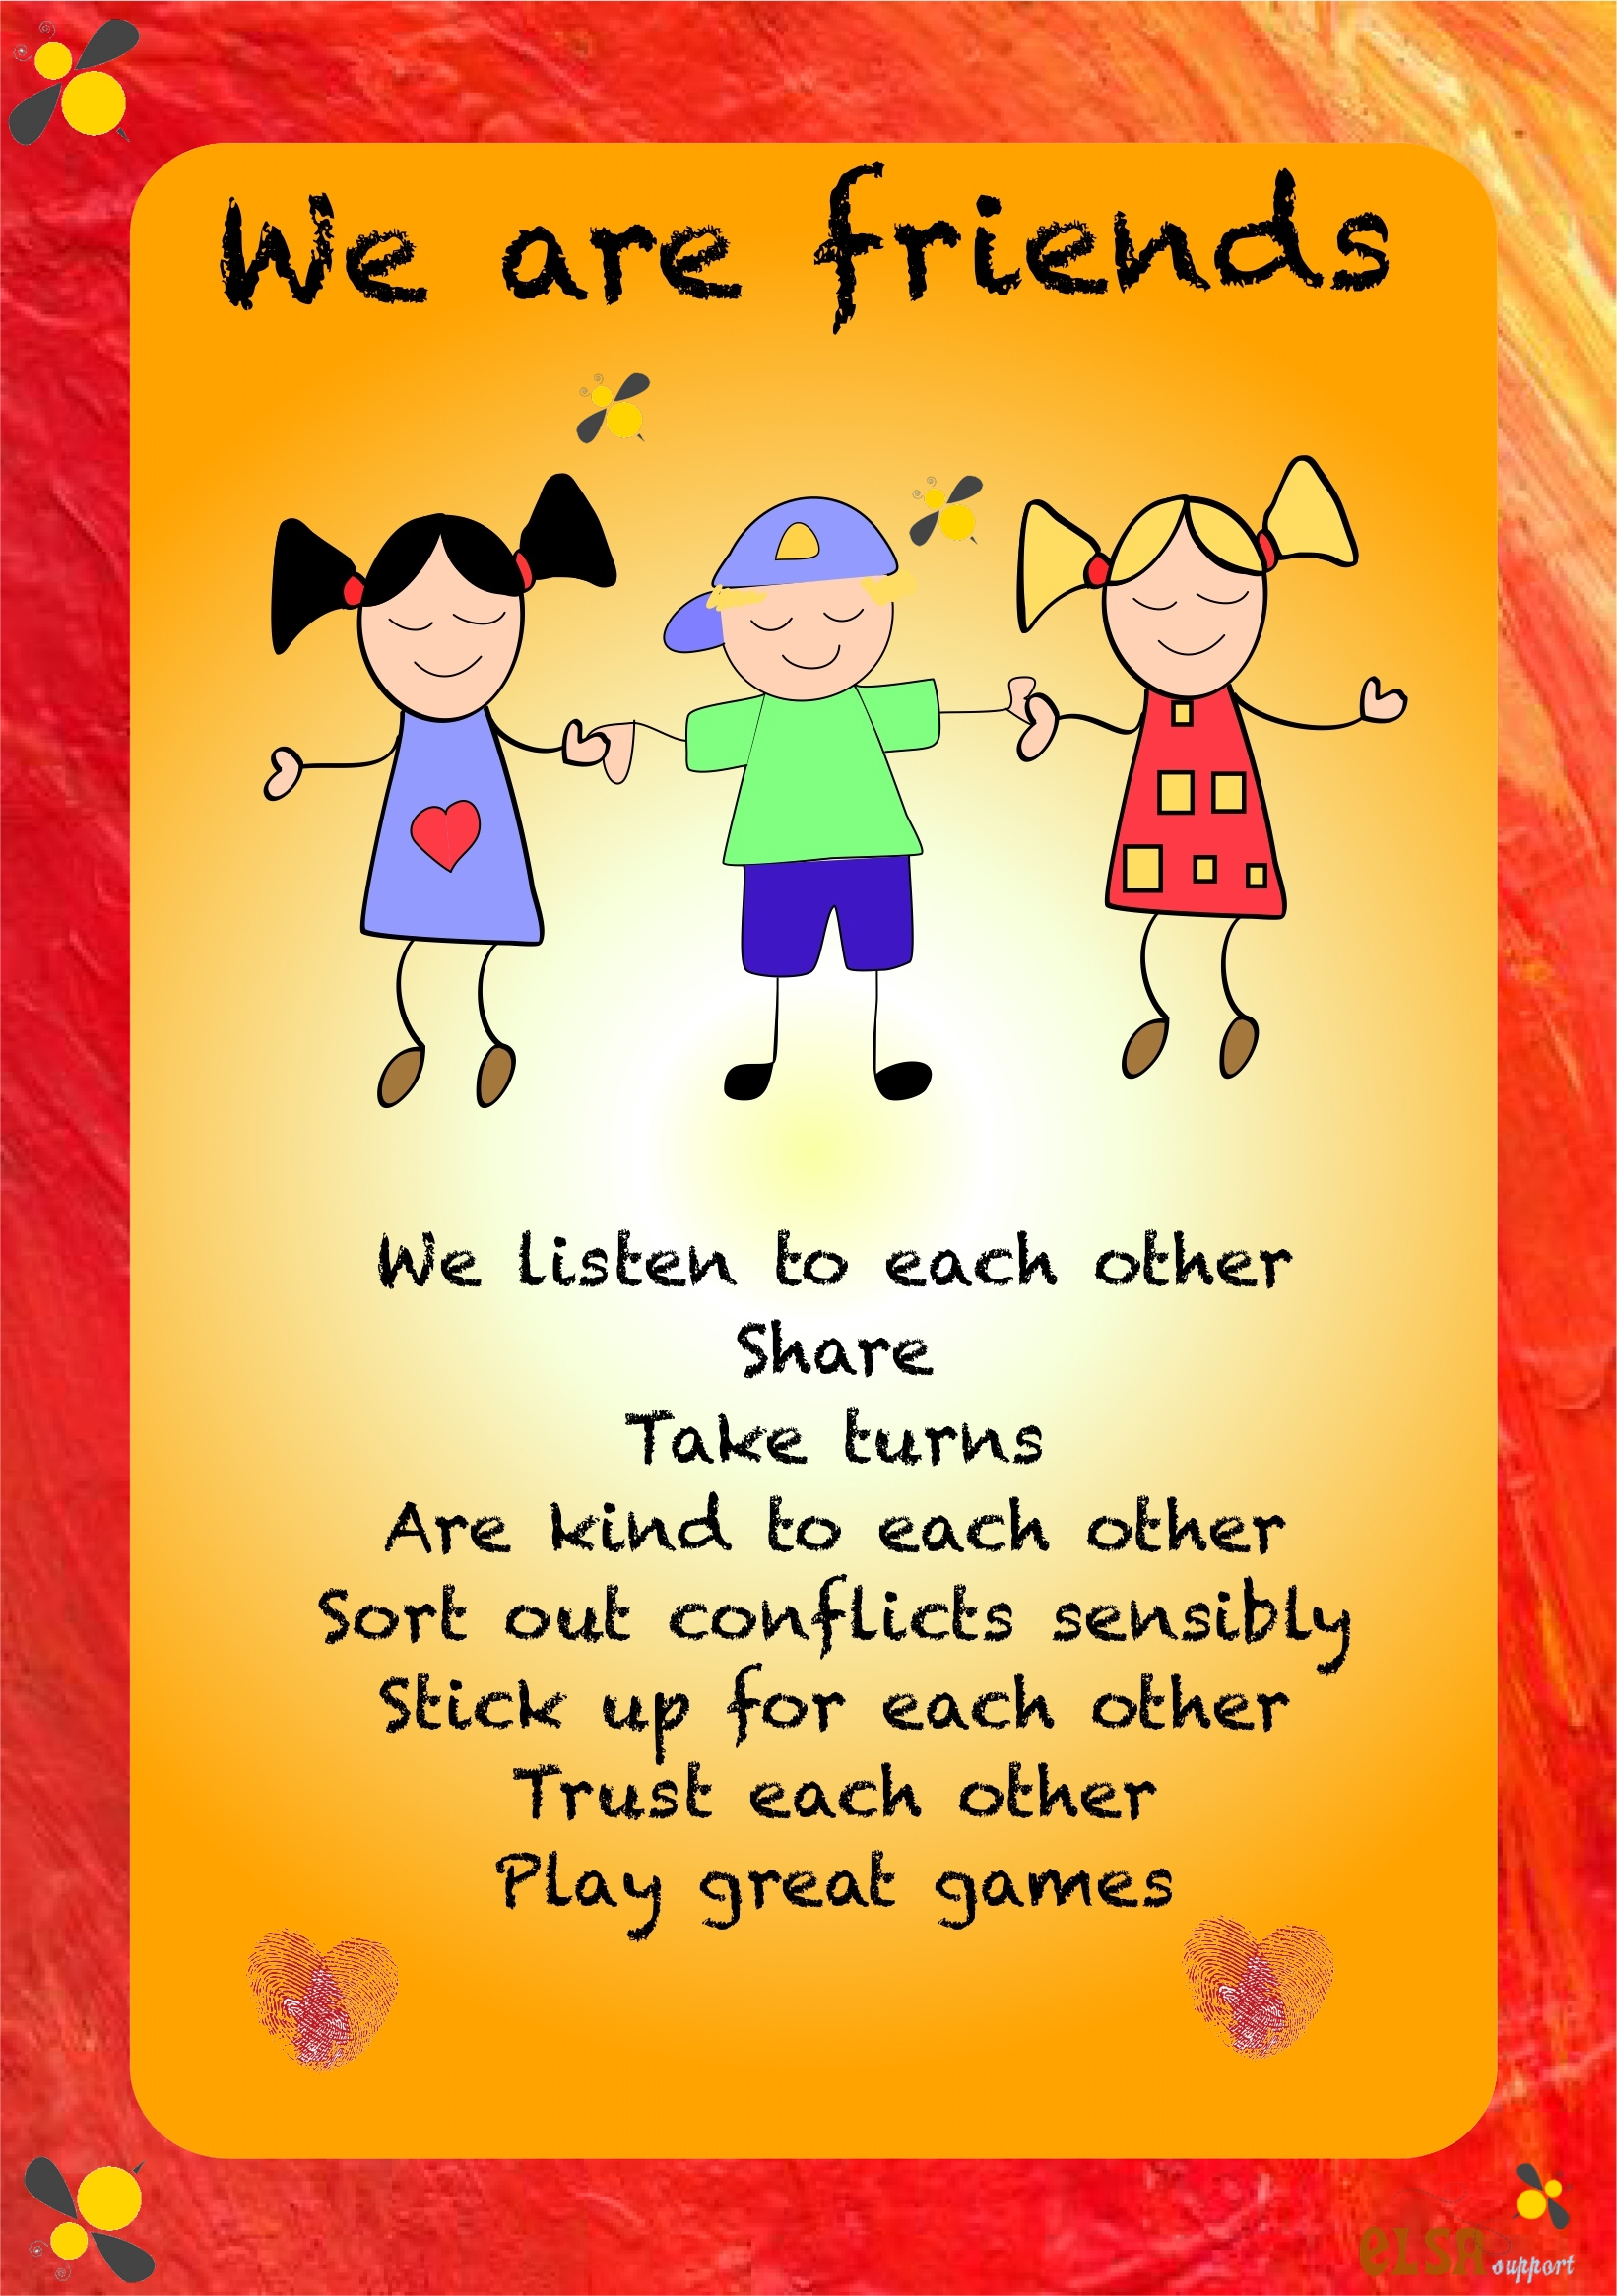 We are friends poster - Elsa Support Friends With Kids Poster